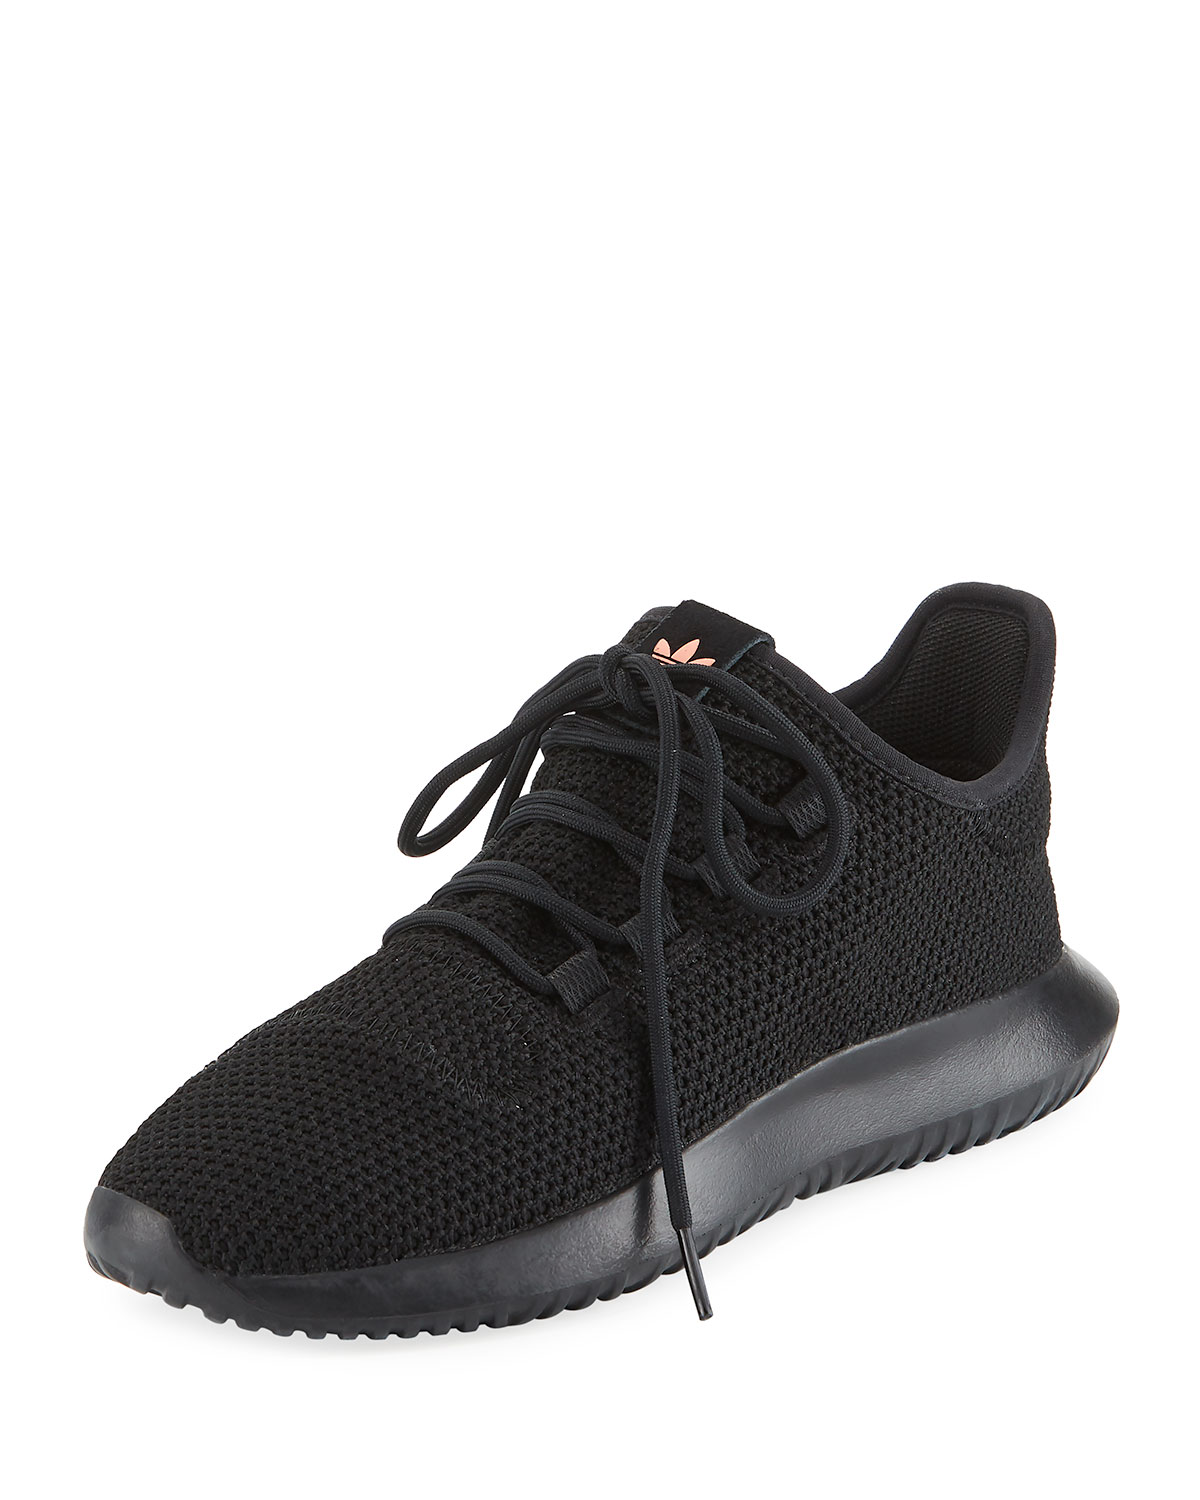 separation shoes 4dc59 998b6 Tubular Shadow Knit Sneakers